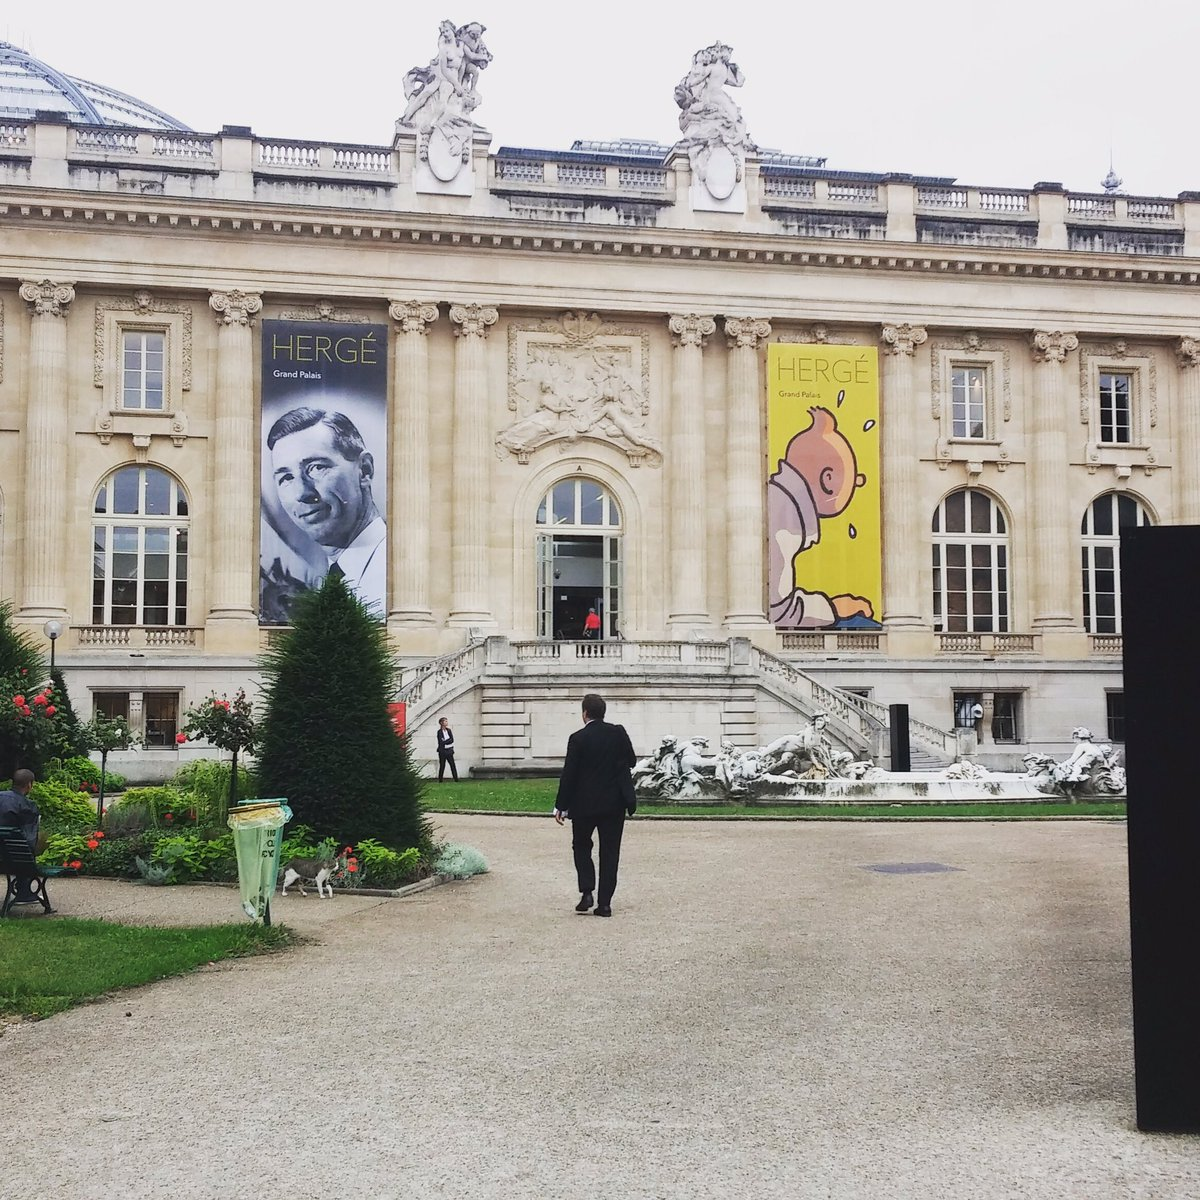 The clock is running ! #ExpoHergé @GrandPalaisRmn https://t.co/iDHVskQrhr